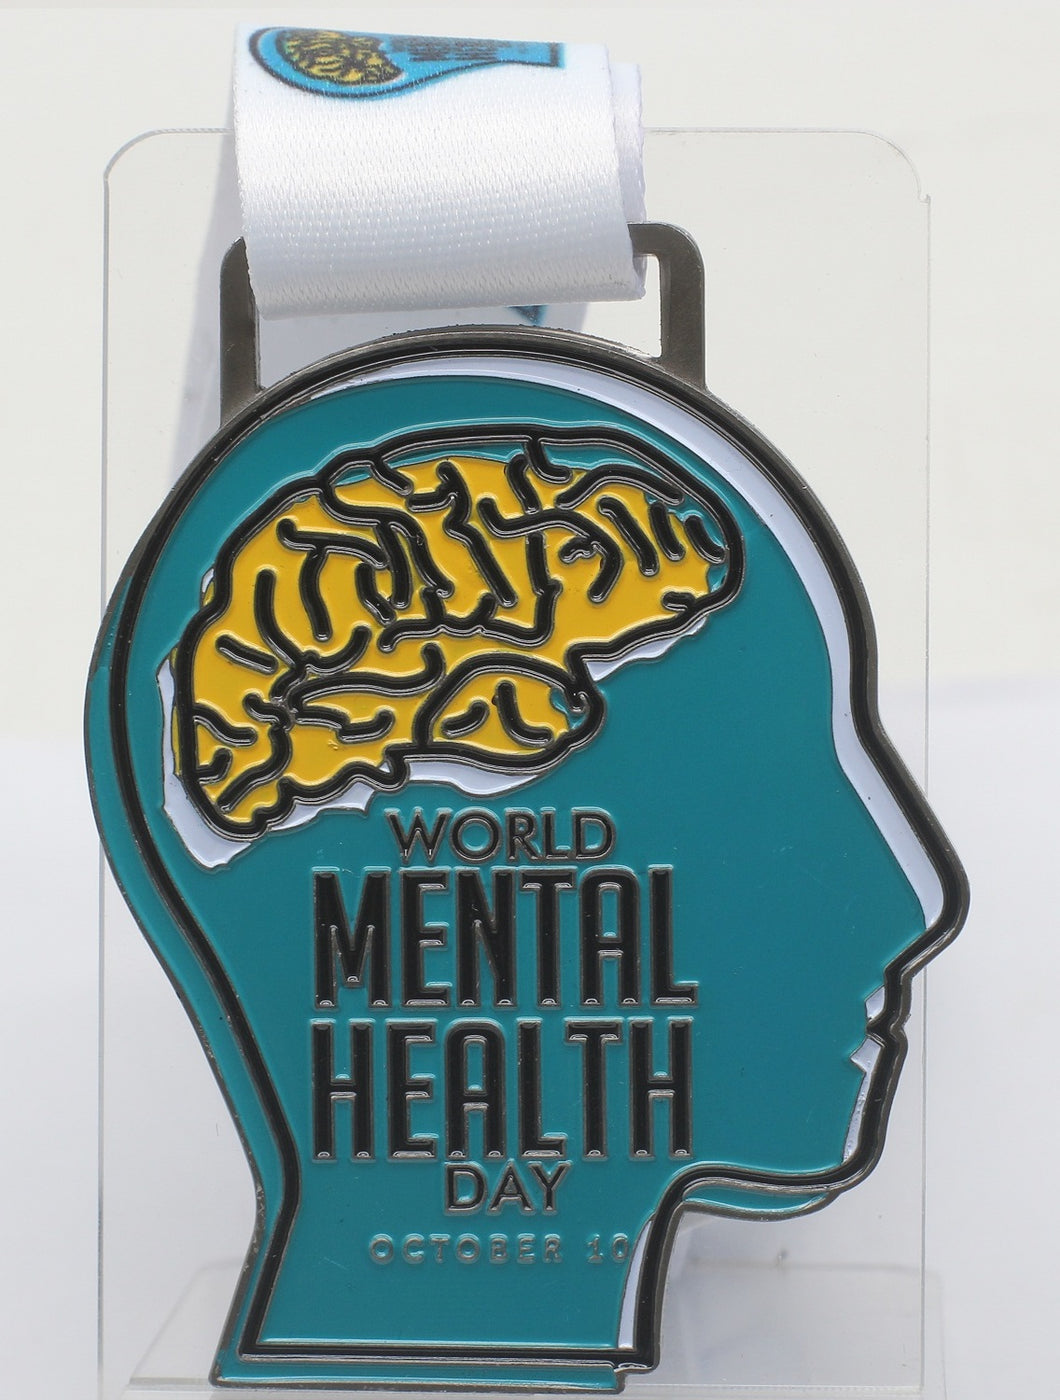 World Mental Health Day Challenge - 1 Mile, 2K, 5K, 10K, Half Marathon and Full Marathon PRE-ORDER 3-4 WEEKS